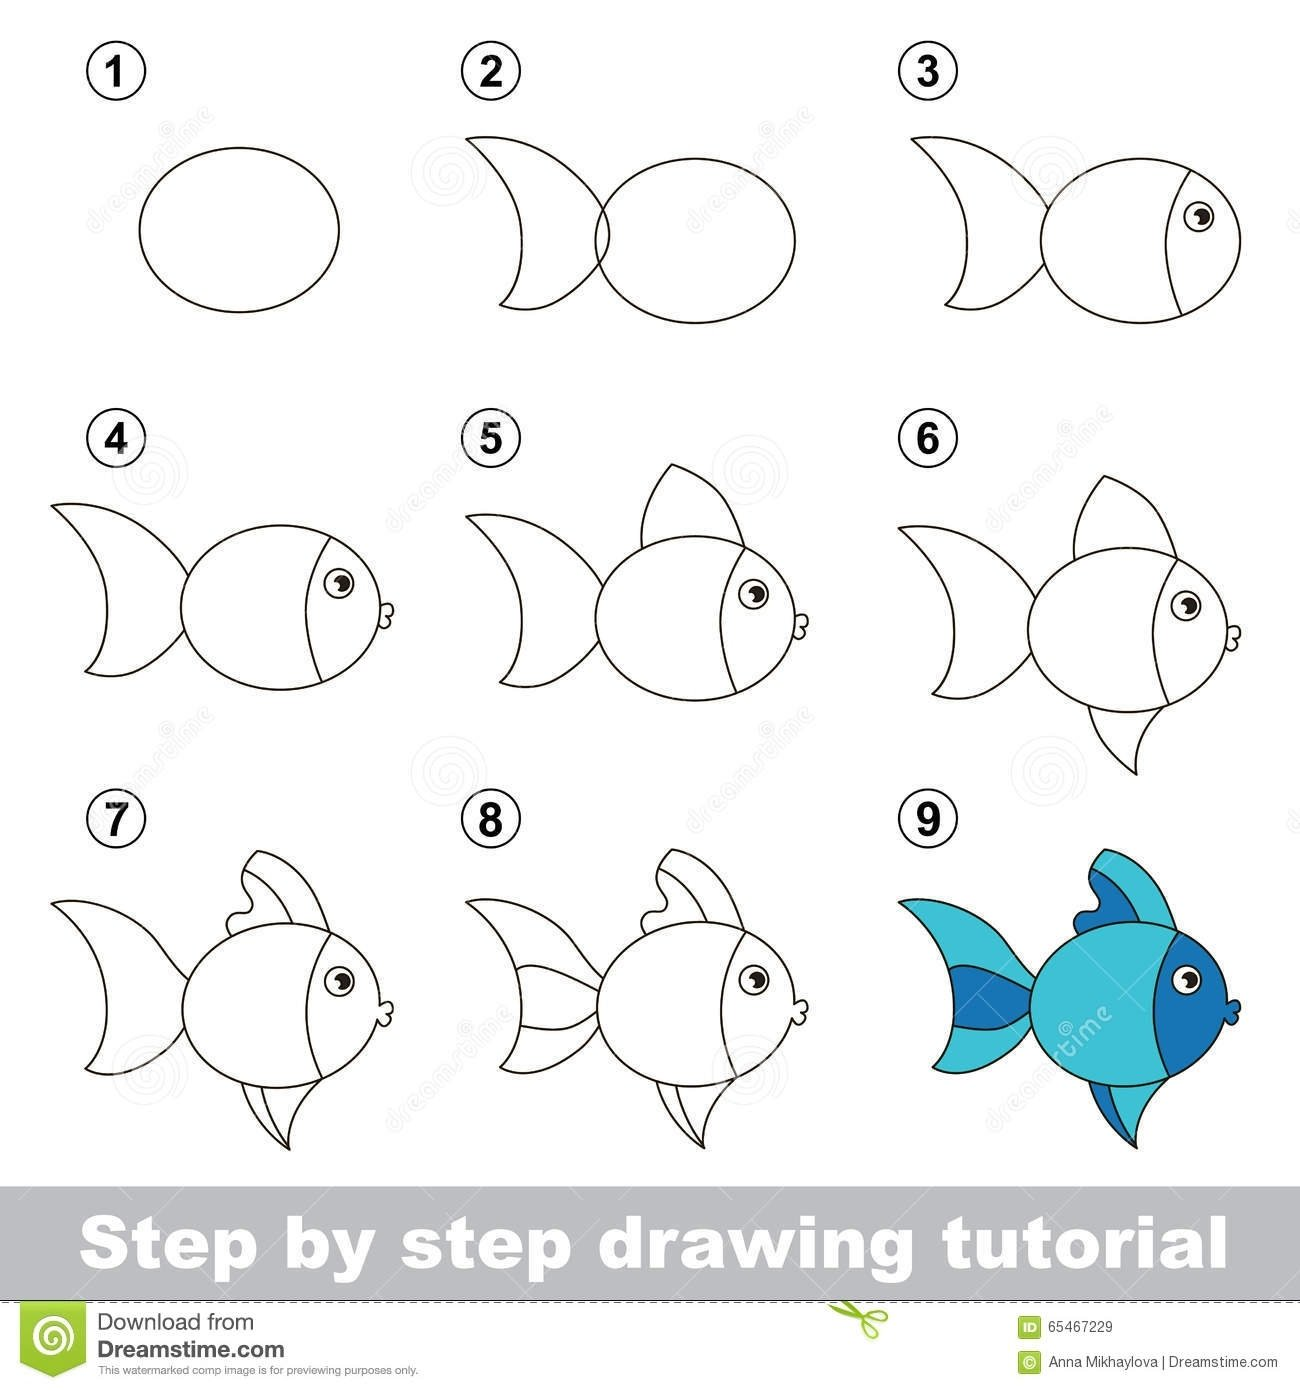 10 Attractive Drawing Ideas Step By Step drawing for kids stepstep drawing tutorial how to draw cute fish 1